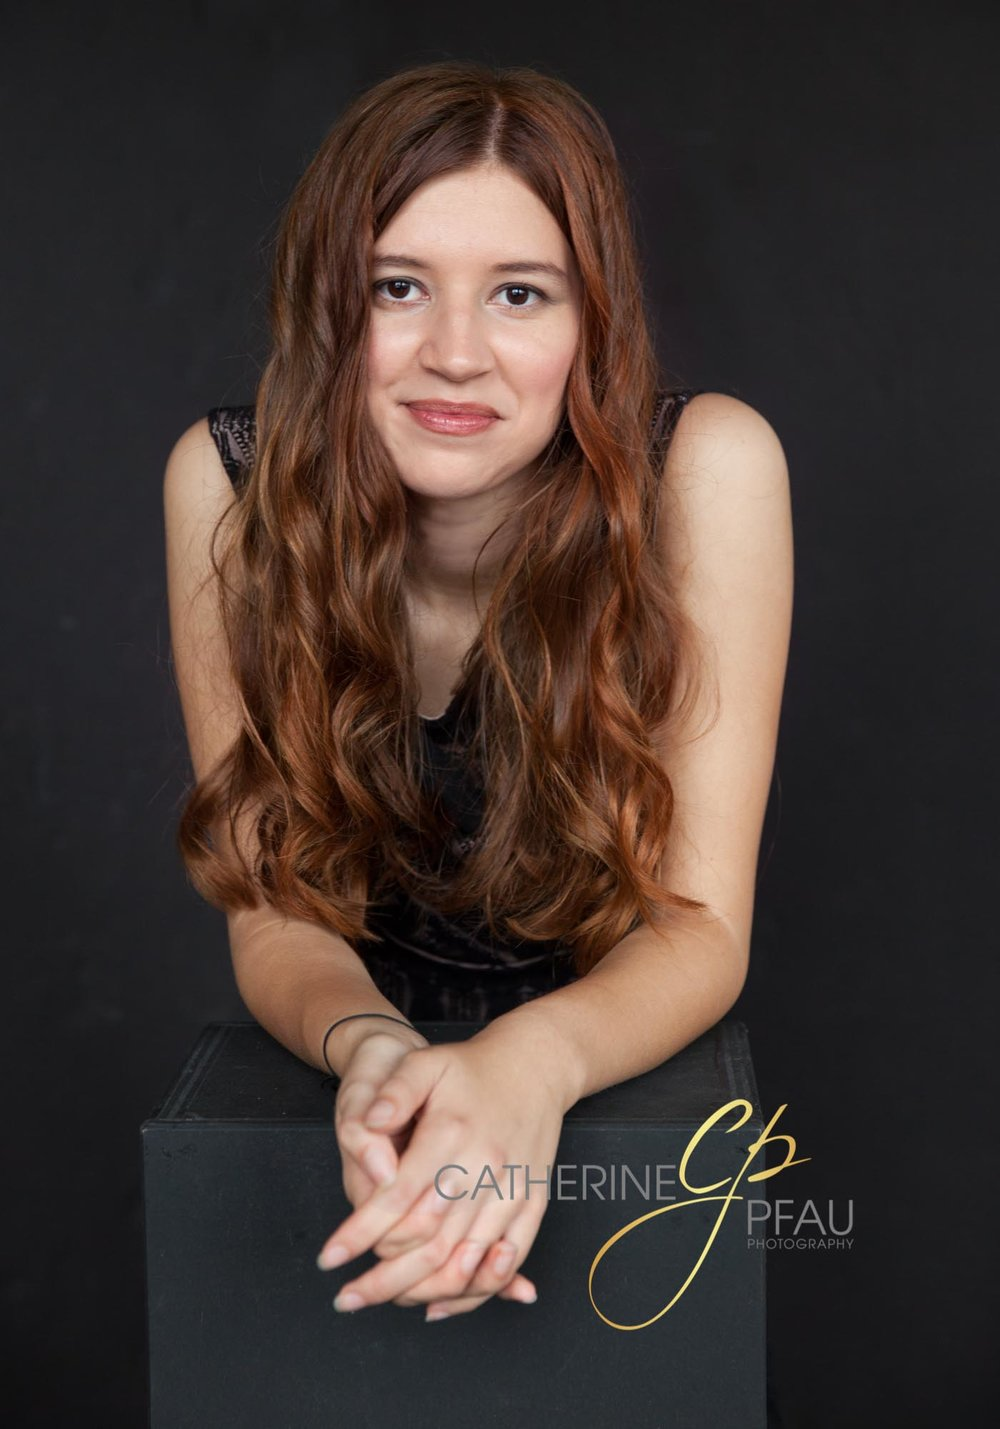 catherinepfauphotography_photography_contemporaryportrait_seniorportrait_13.jpg